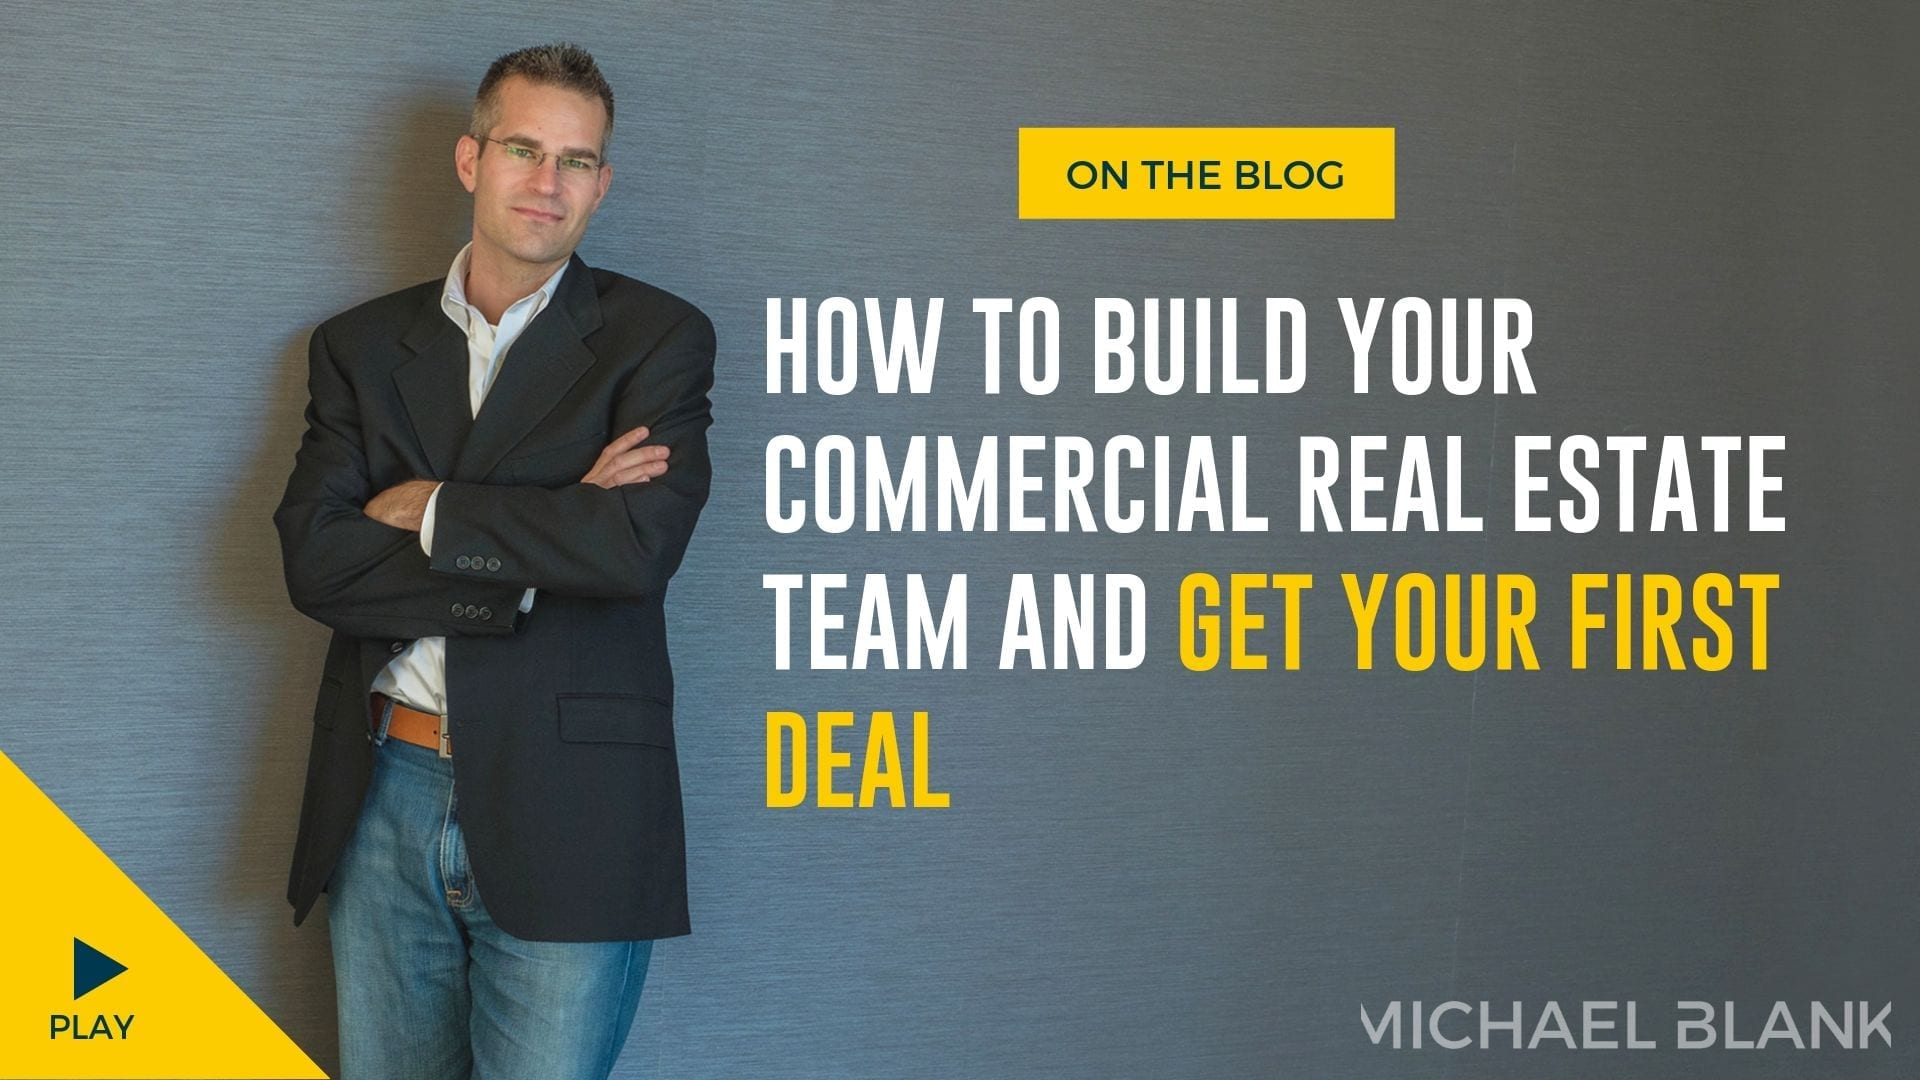 How To Build Your Commercial Real Estate Team and Get Your First Deal